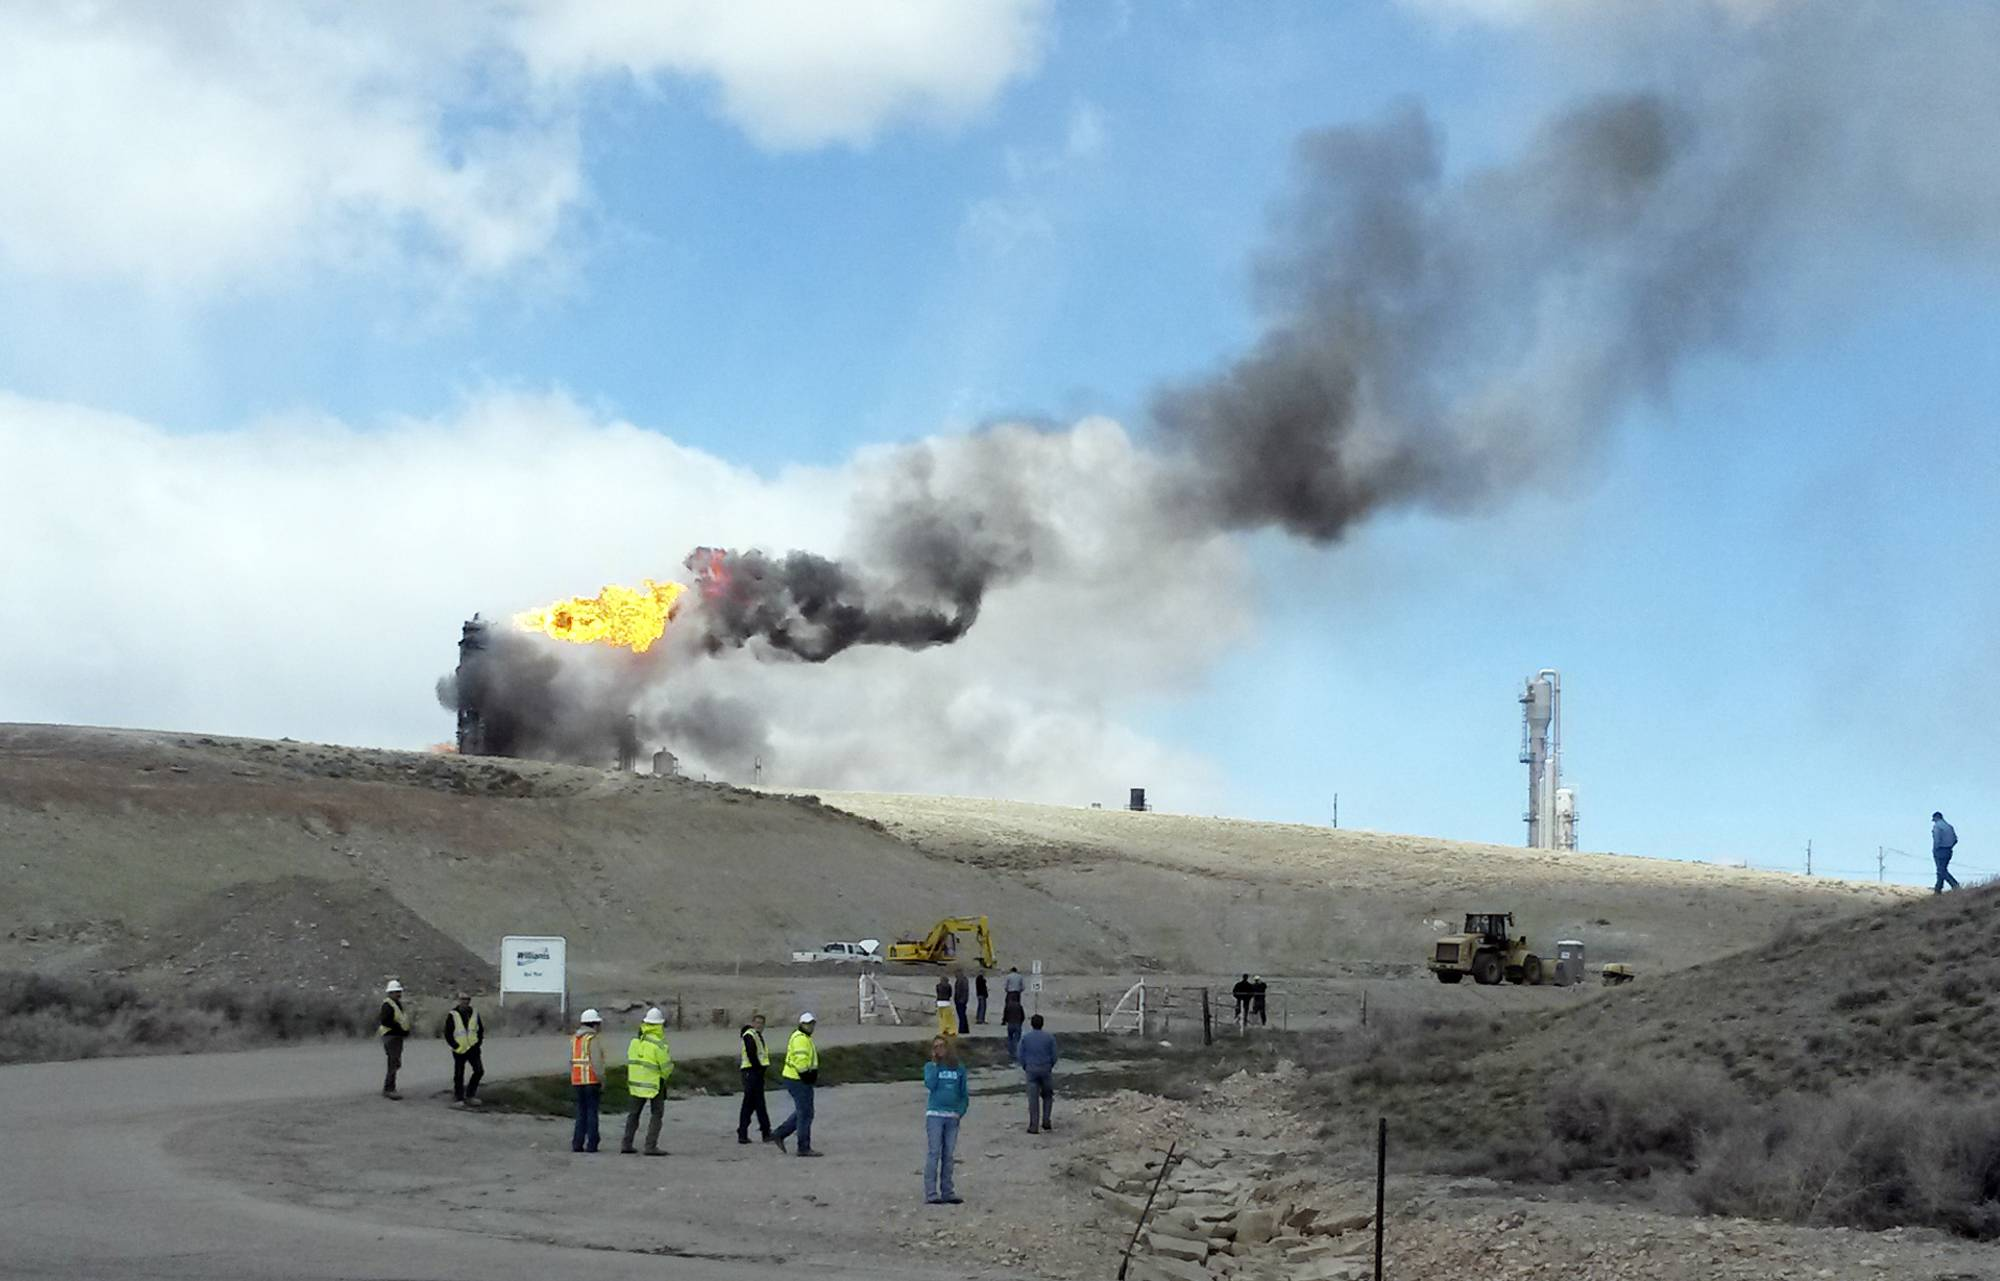 The site of an explosion and fire at a natural gas processing facility and major national pipeline hub, Wednesday, April 23, 2014, in Opal, Wyo. Officials said there are no reports of injuries and the residents of Opal have been evacuated to an area about 3 miles outside the town as a precaution. Opal has about 95 residents and is about 100 miles northeast of Salt Lake City.